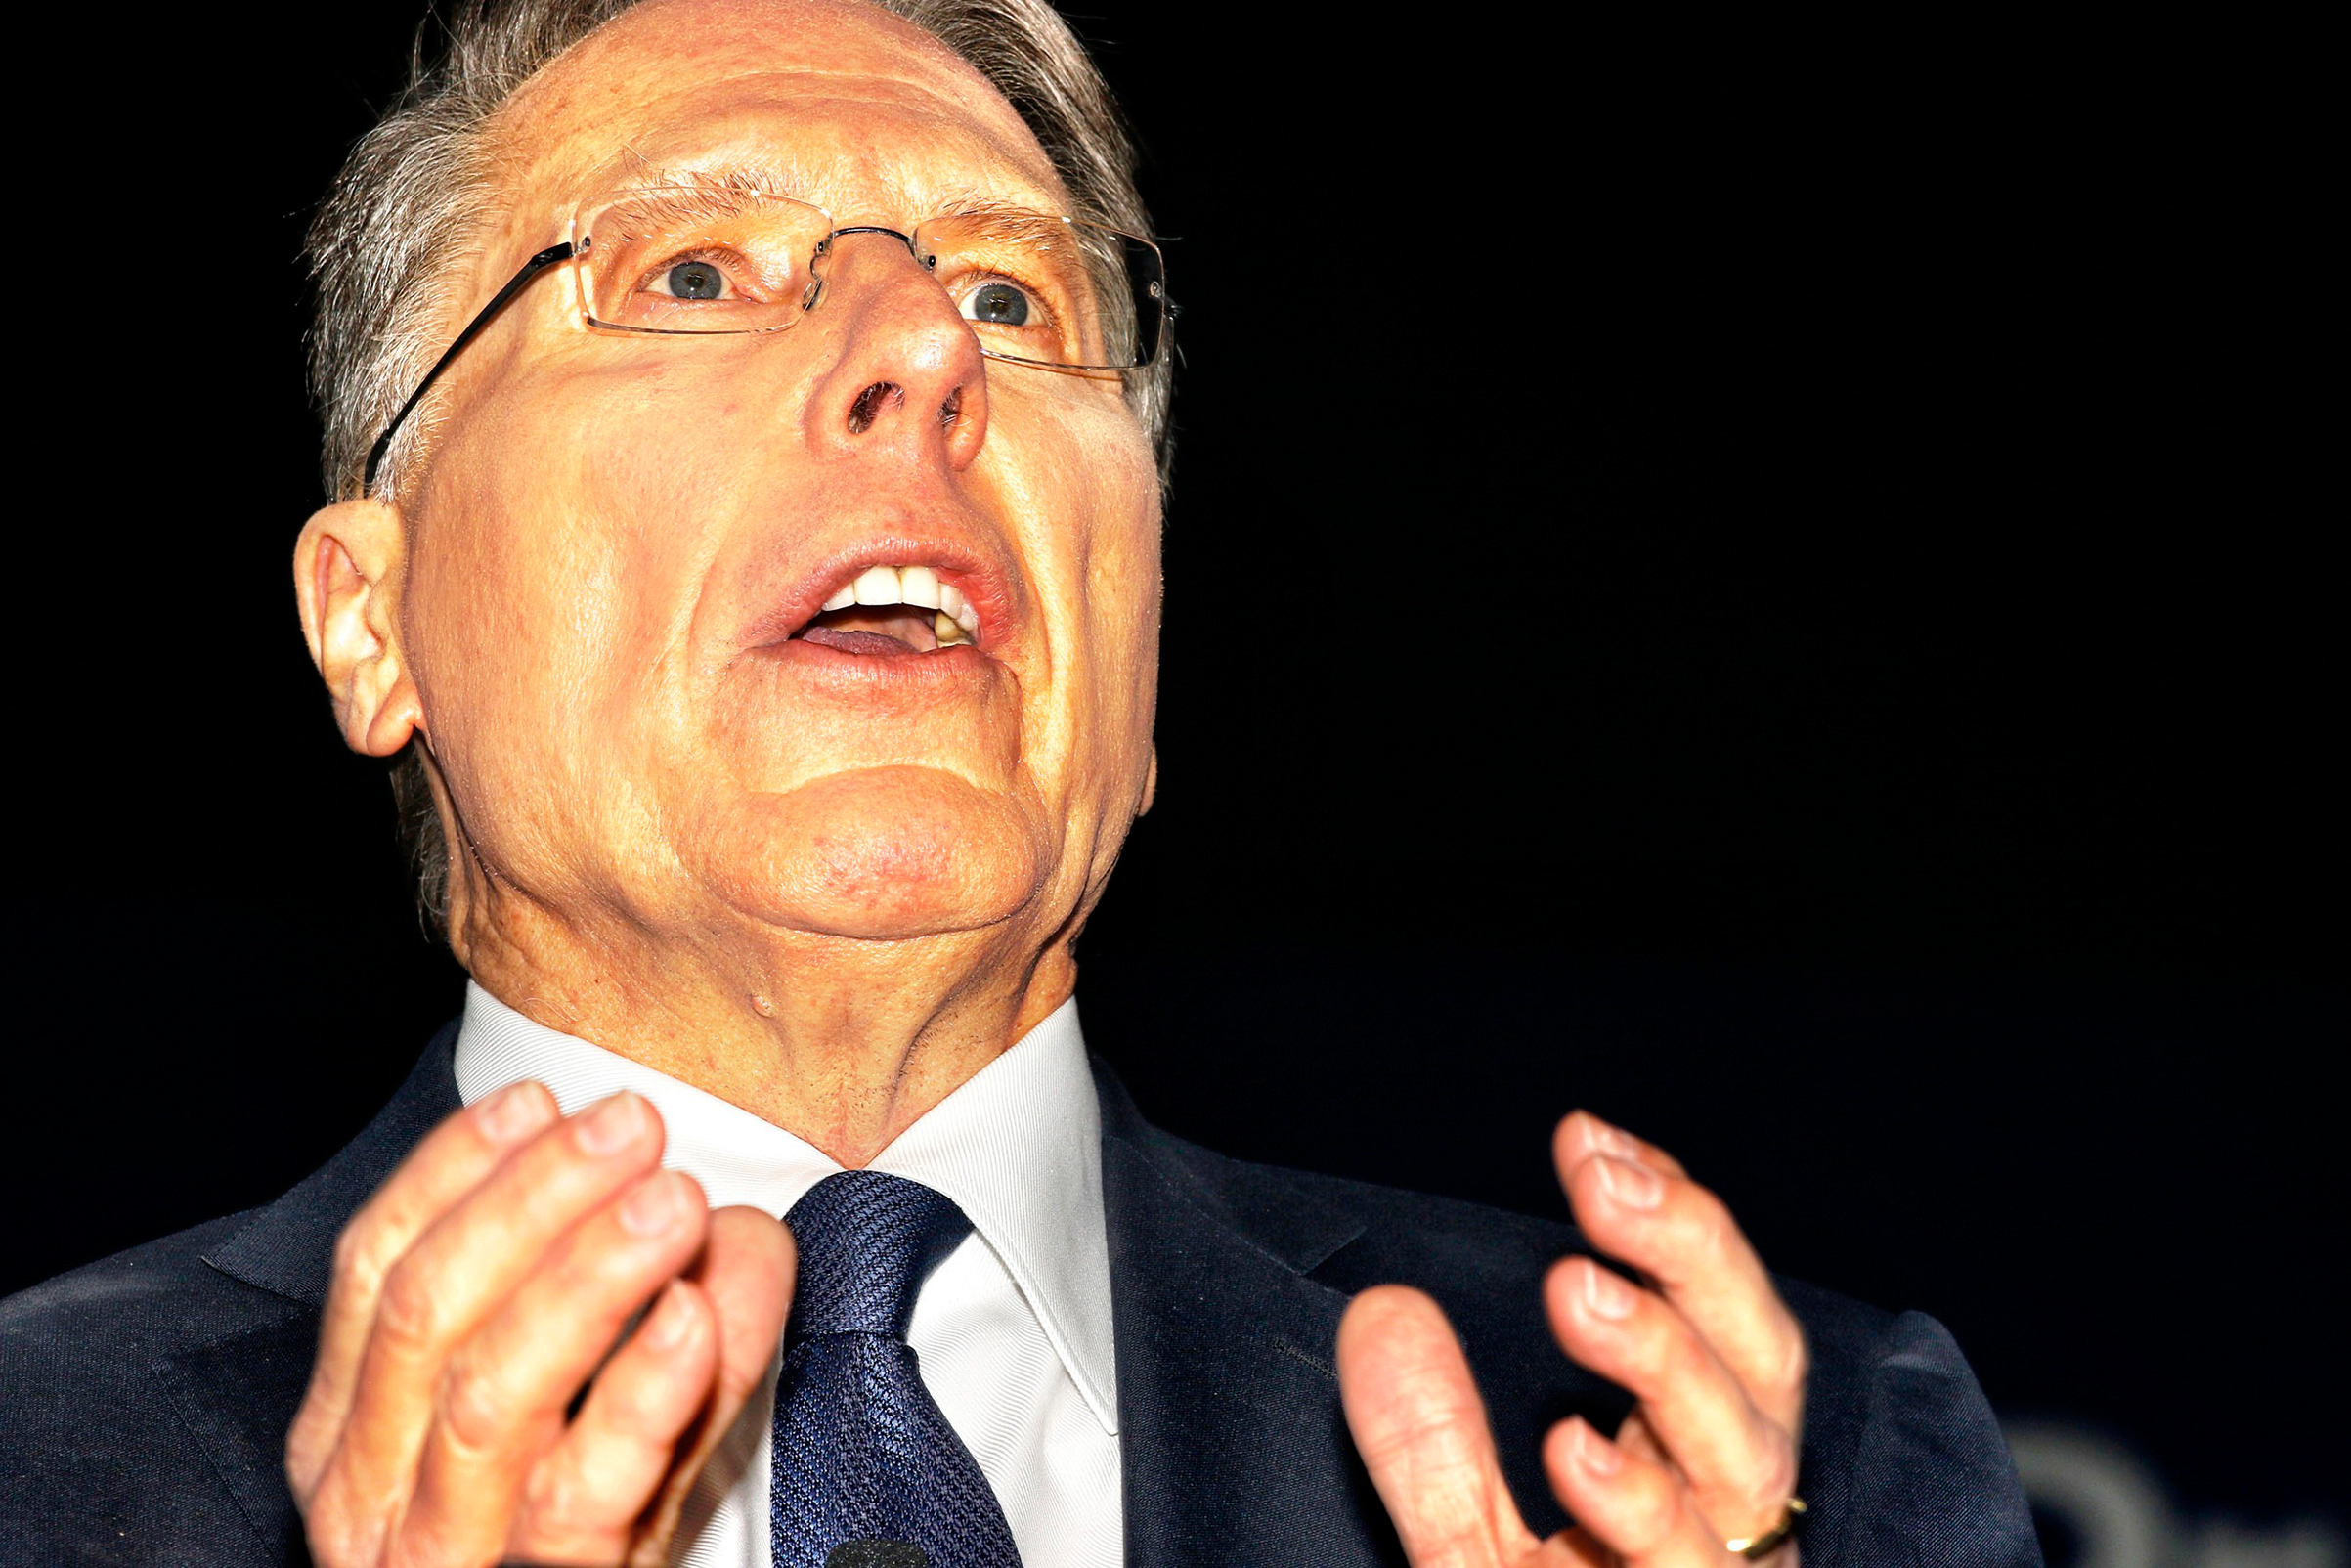 NRA CEO Wayne LaPierre speaks at the Conservative Political Action Conference in Oxon Hill, Md., on Feb. 24